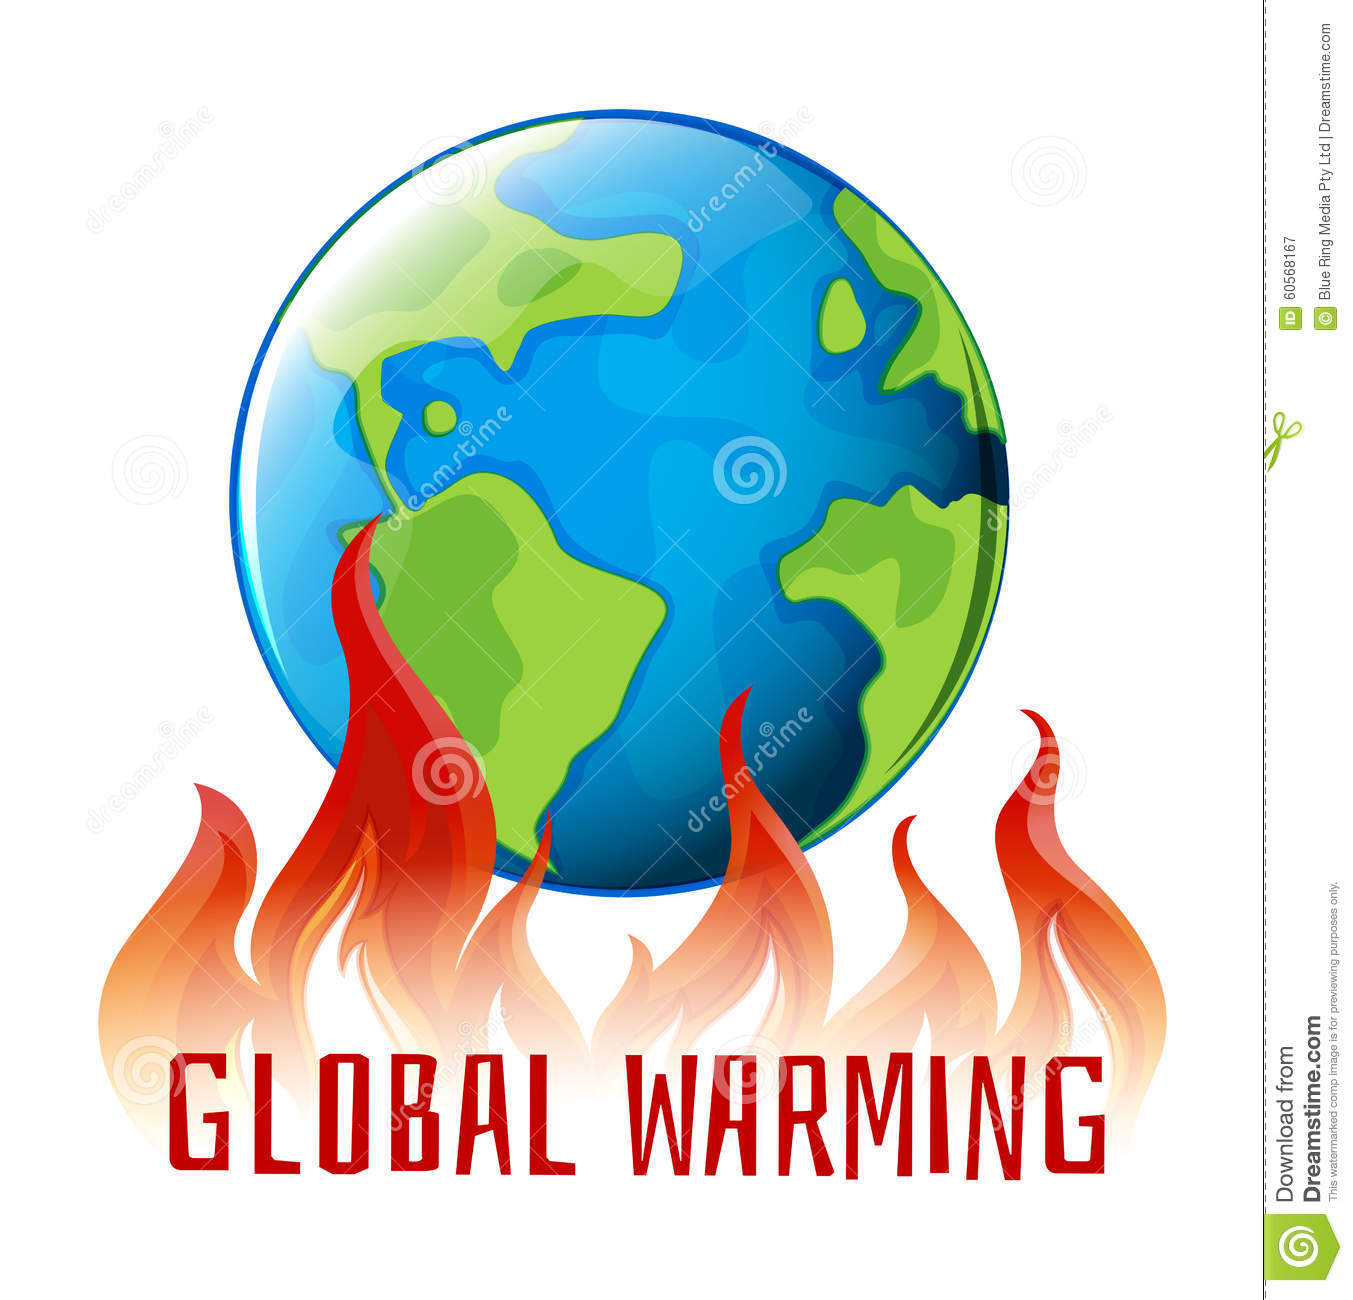 global warming world Will global warming bring us to our demise it's possiblerecent studies show that global warming could be one of the ways life could be destroyed on earth.